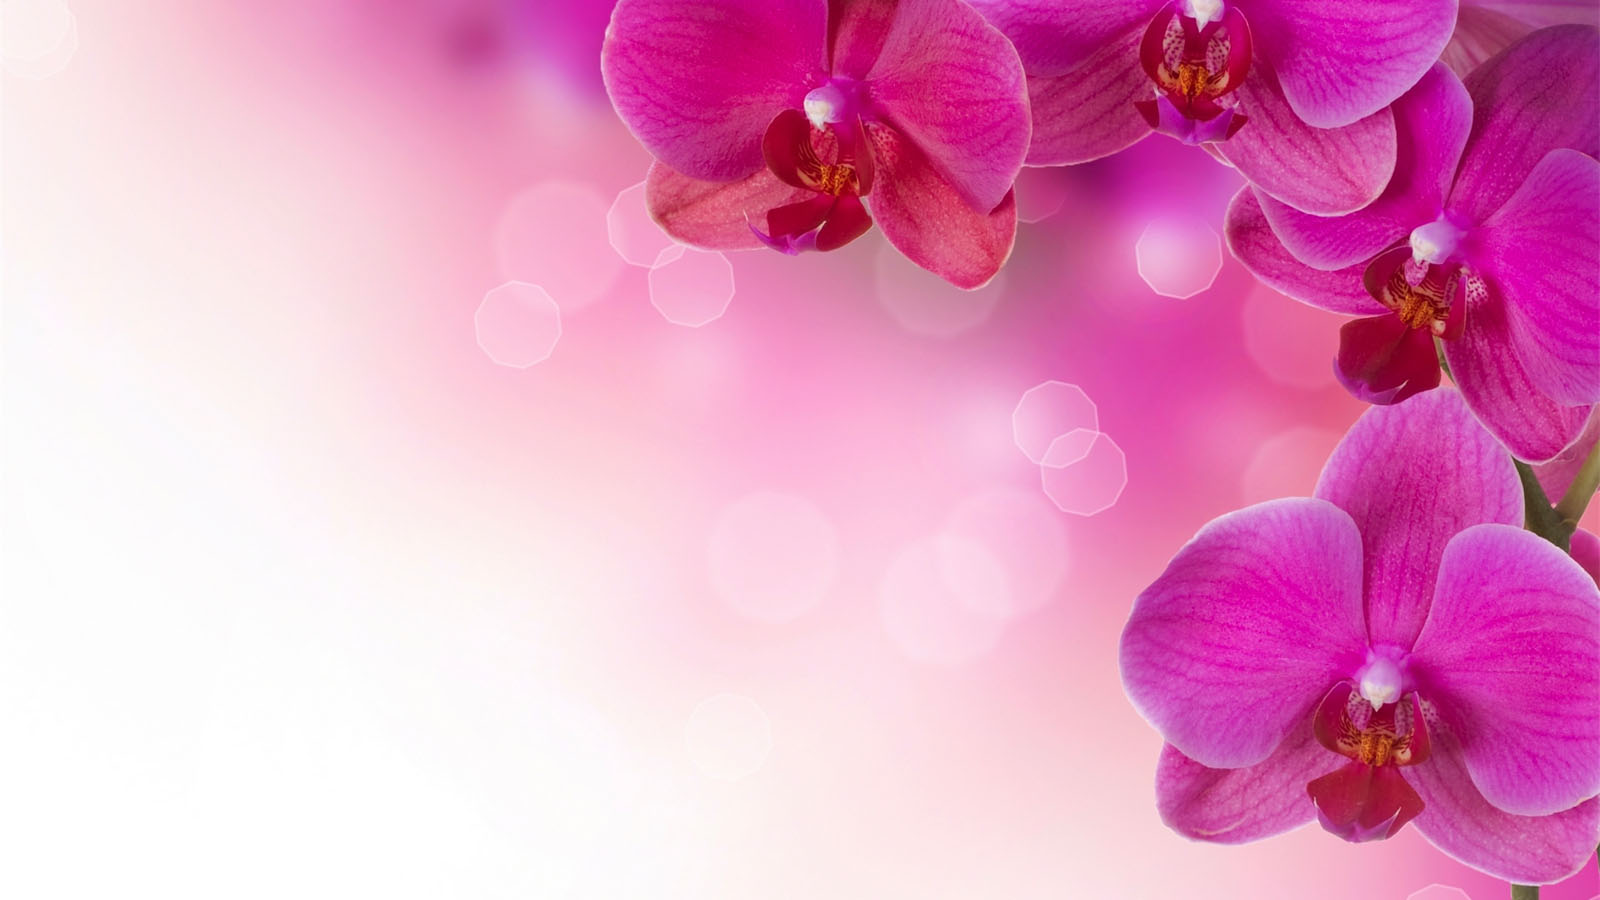 Download this gallery to your personal computer or the web-media device. Do not forget to view different pink flower background pictures images galleries.